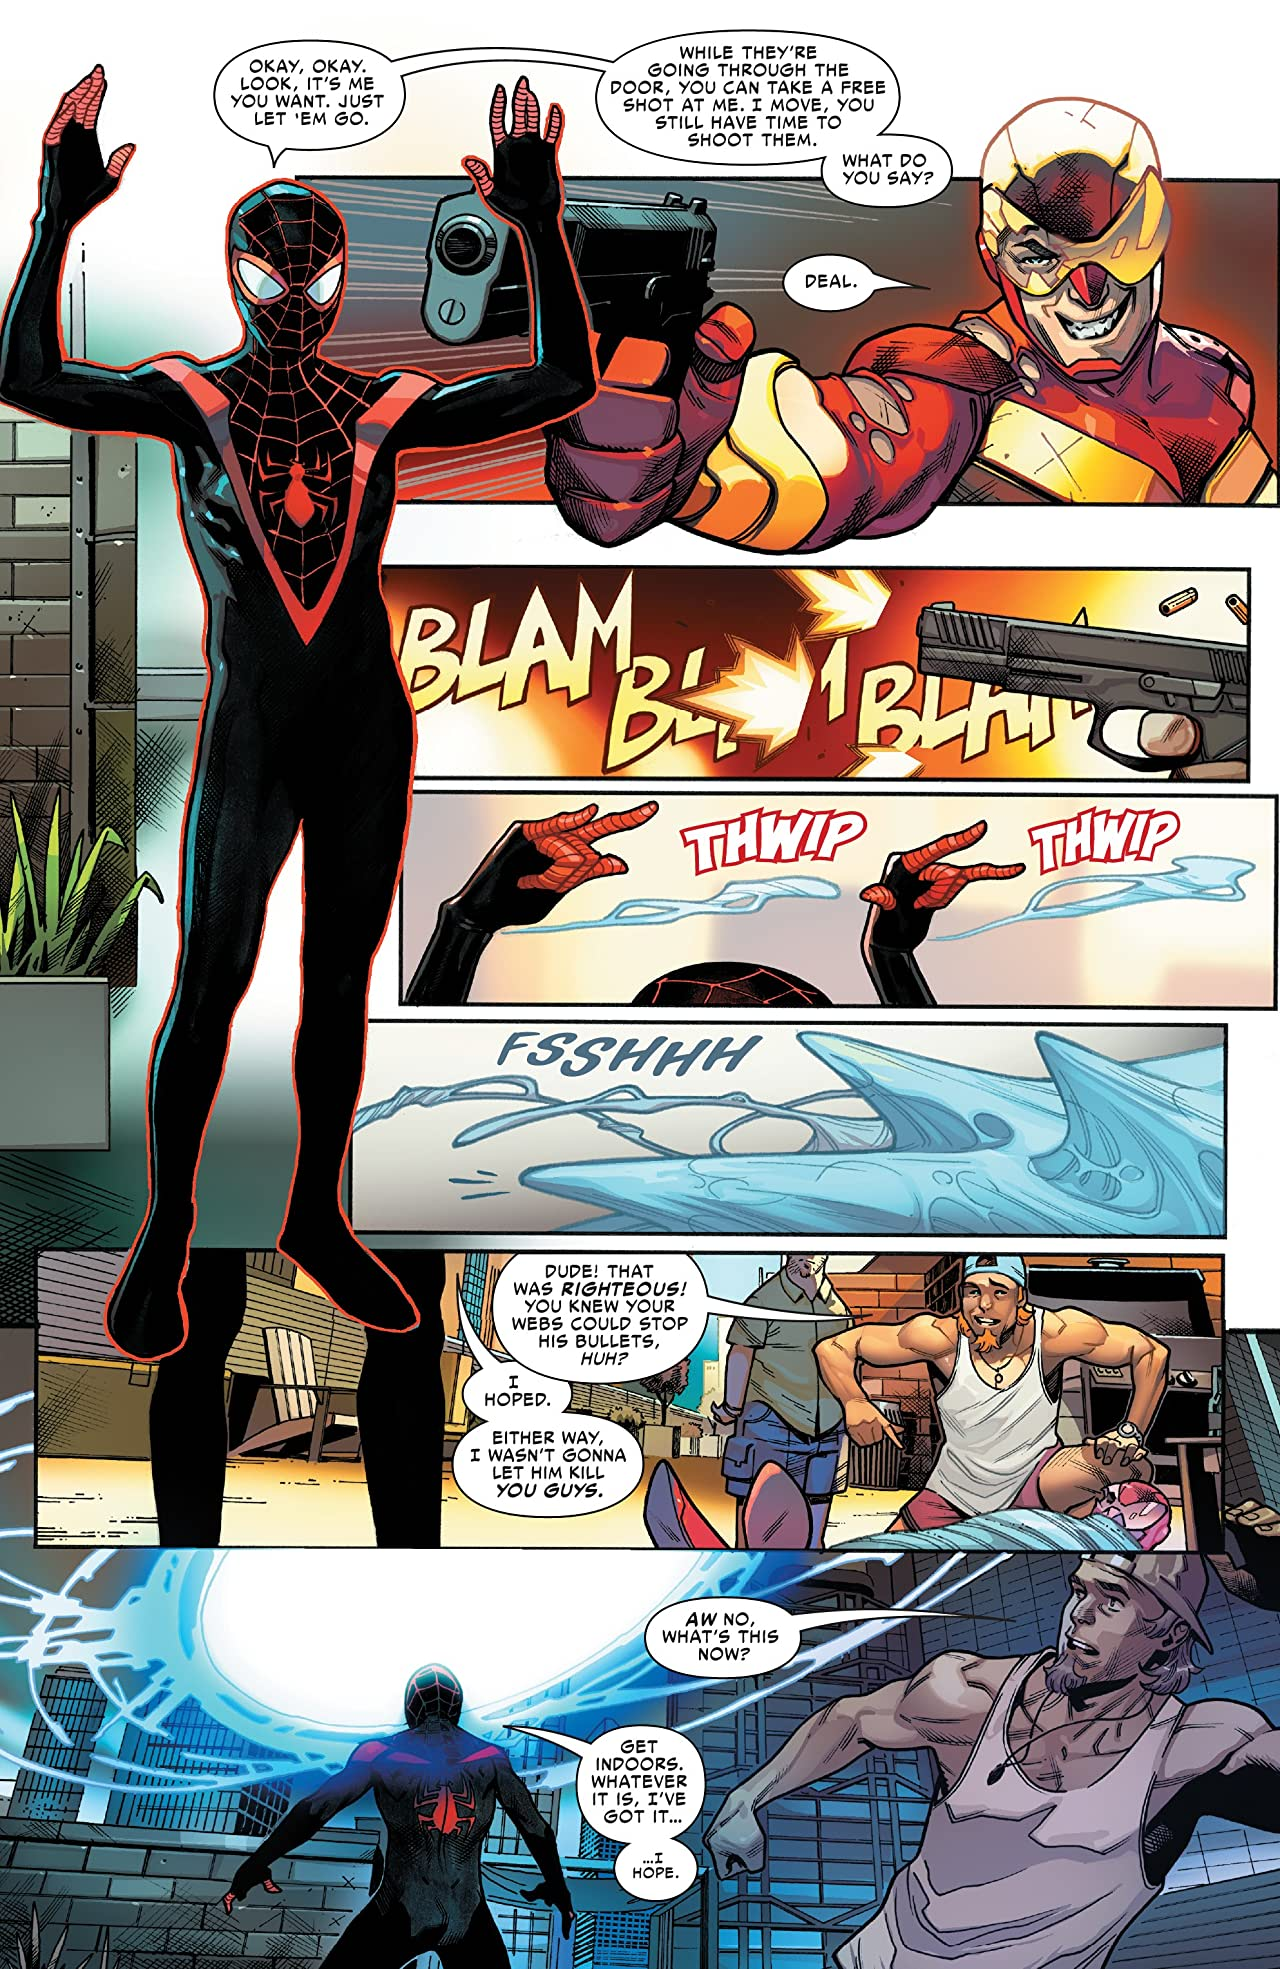 Spider-Geddon (2018) #1 (of 5)